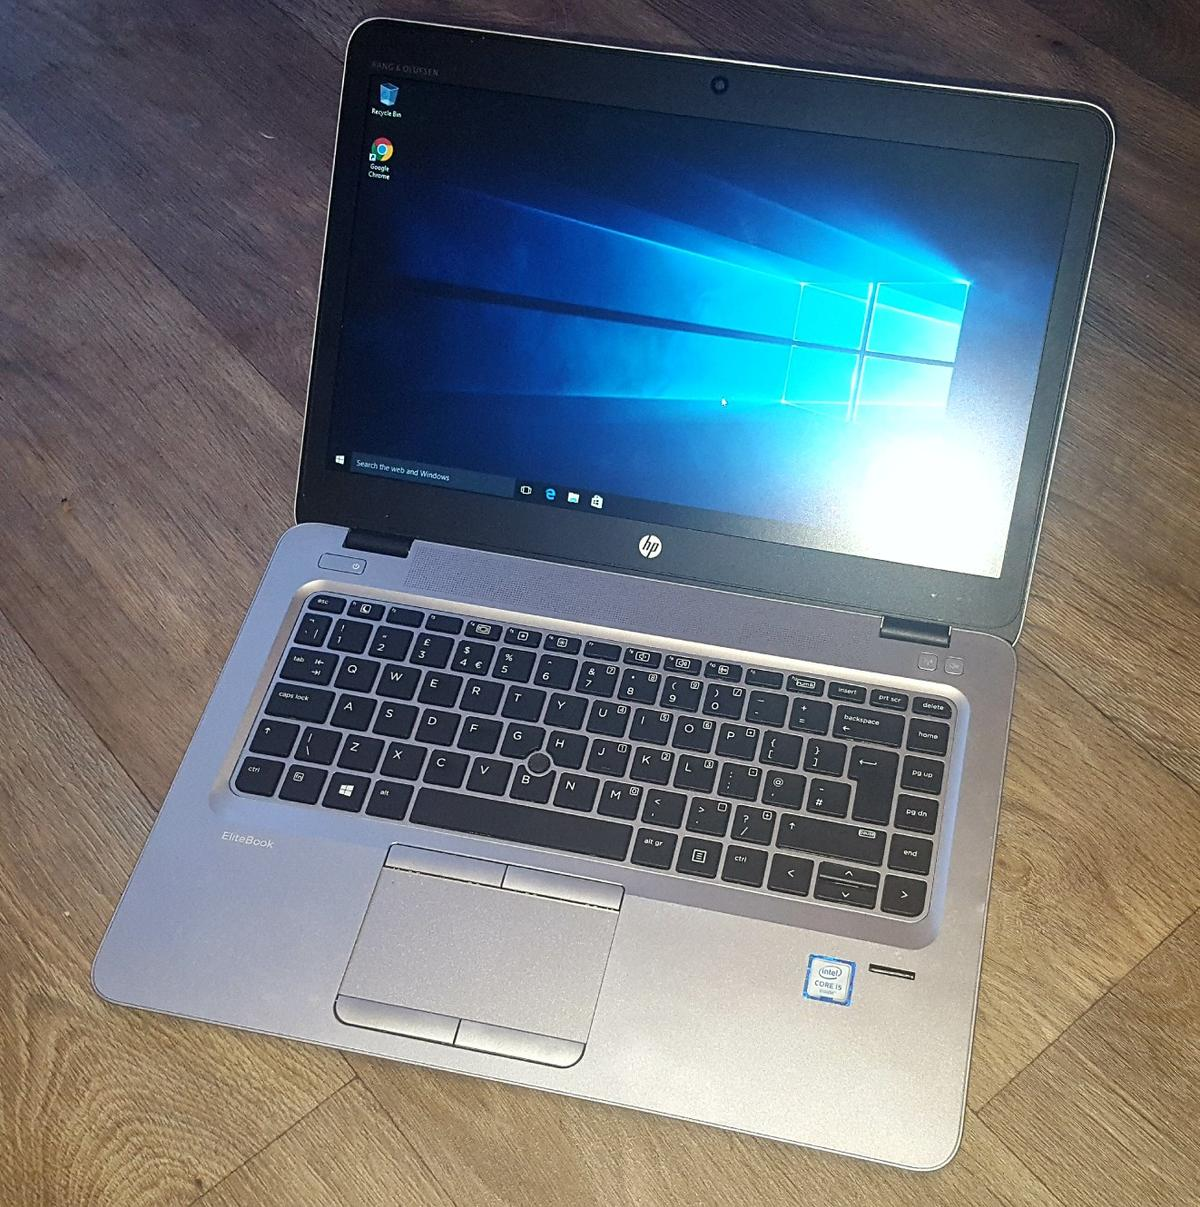 Hp elitebook 840 g3 core i5 6th gen laptop